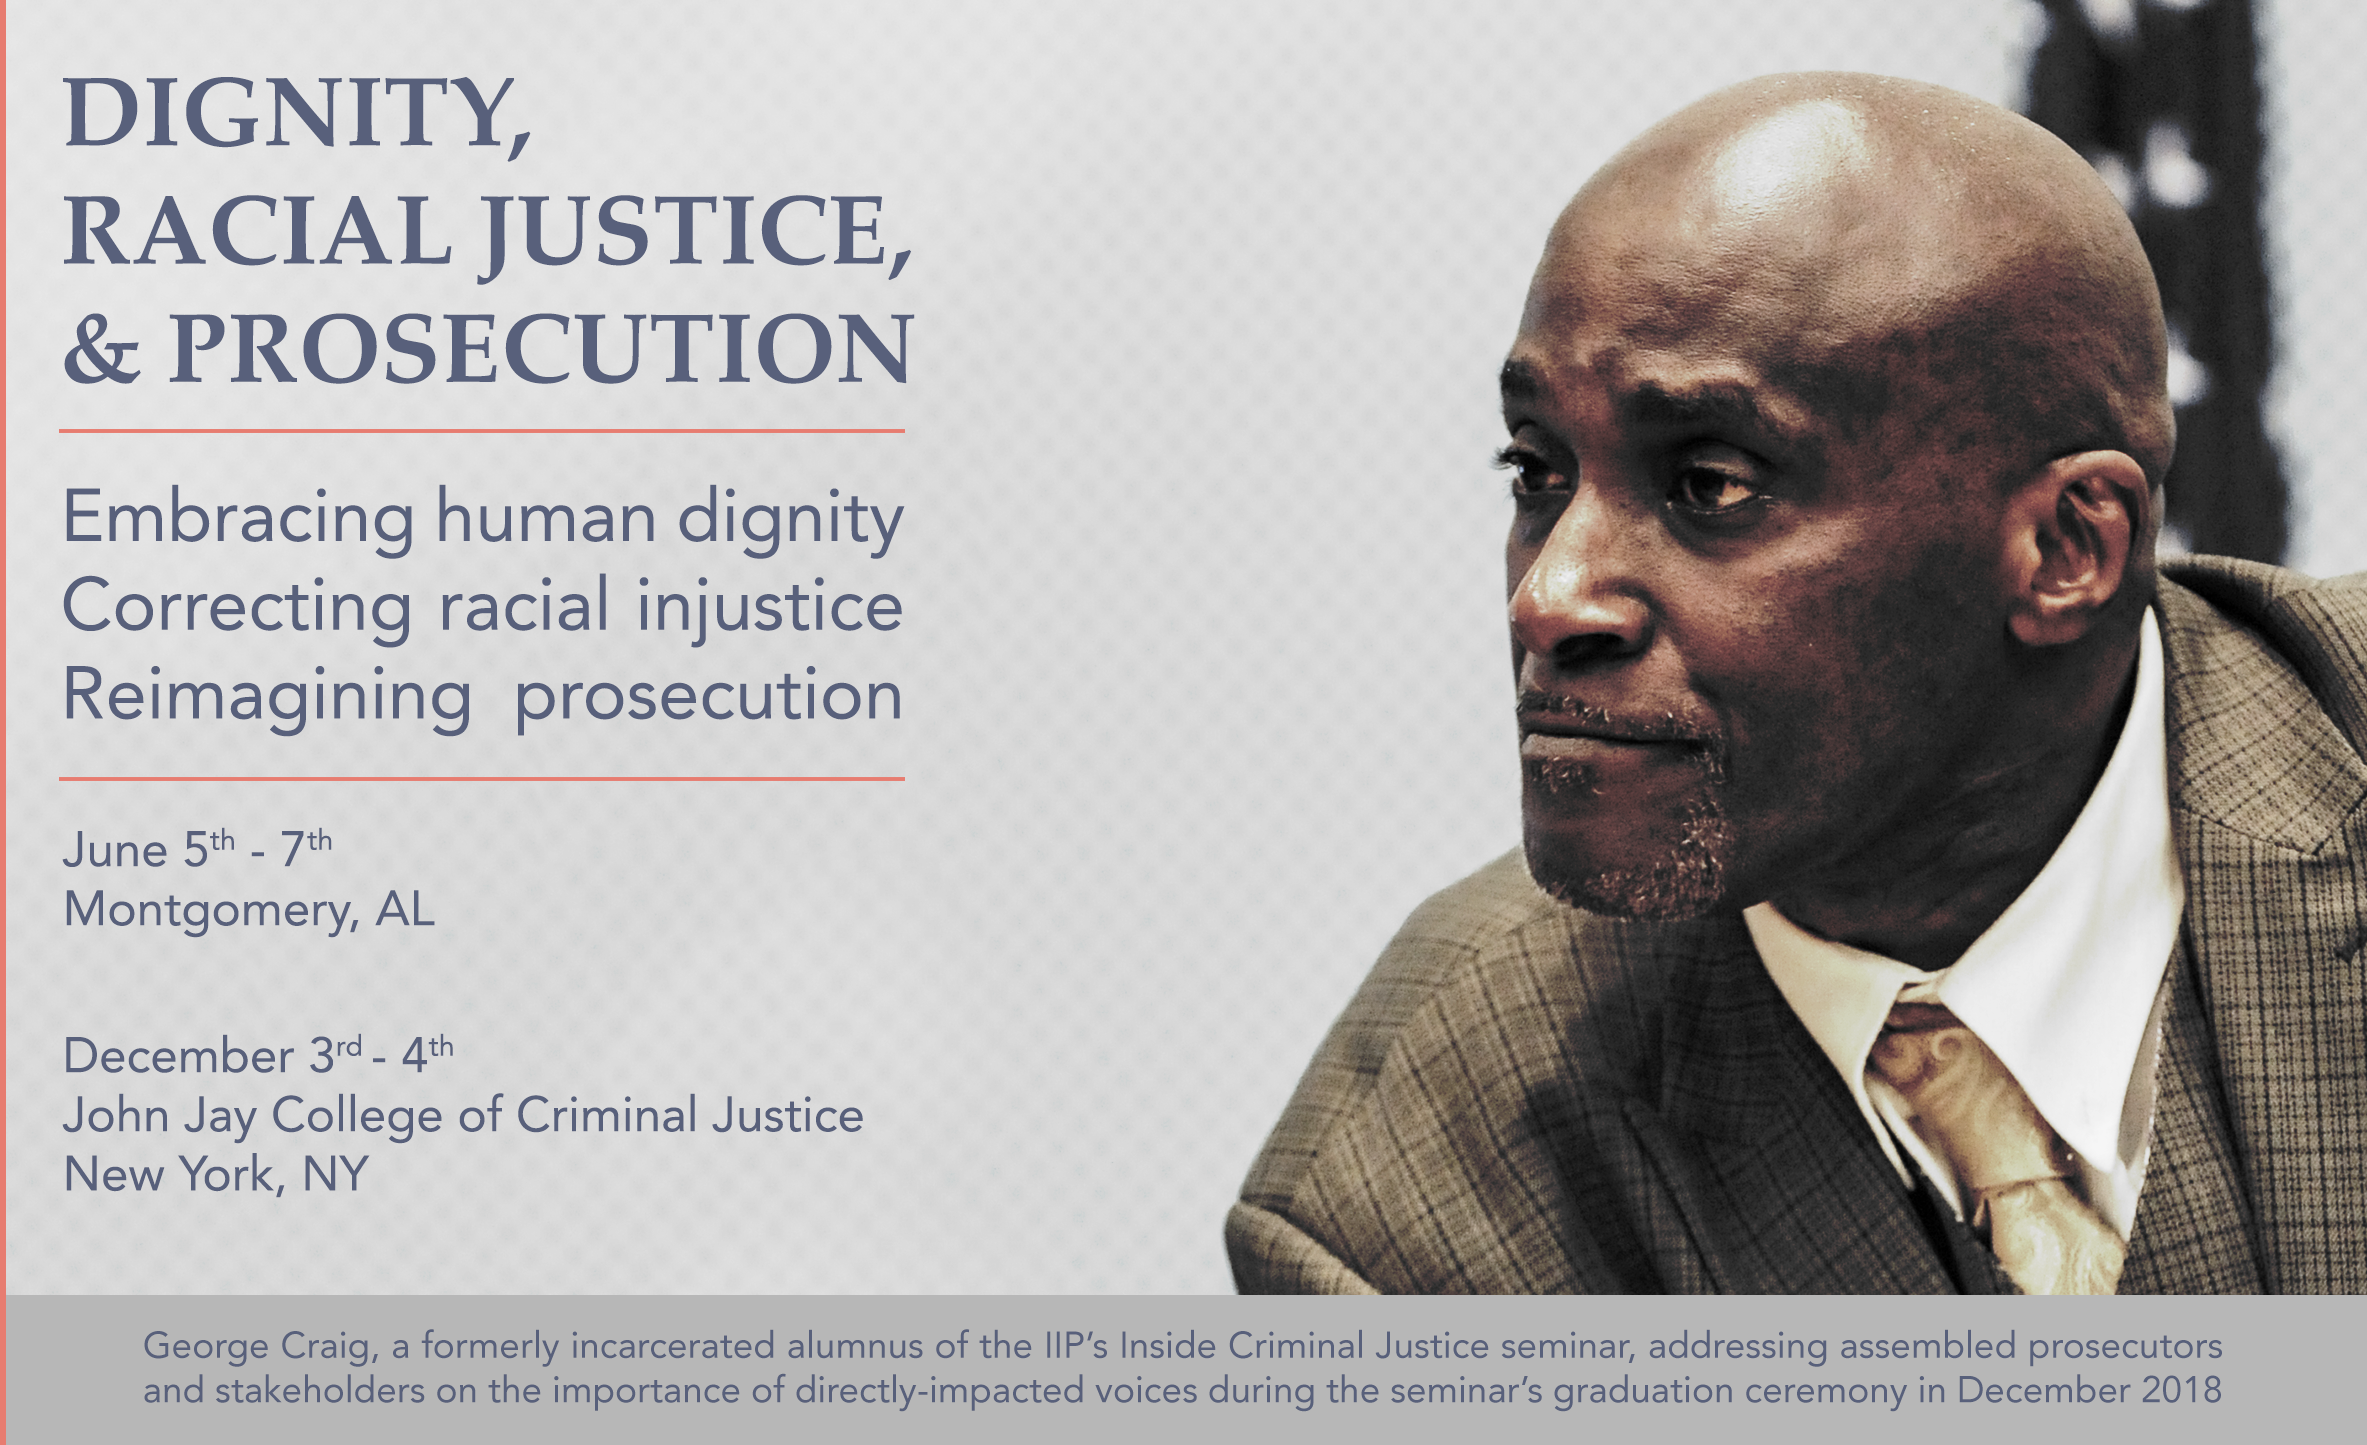 Prosecution and Human Dignity_5 20.png